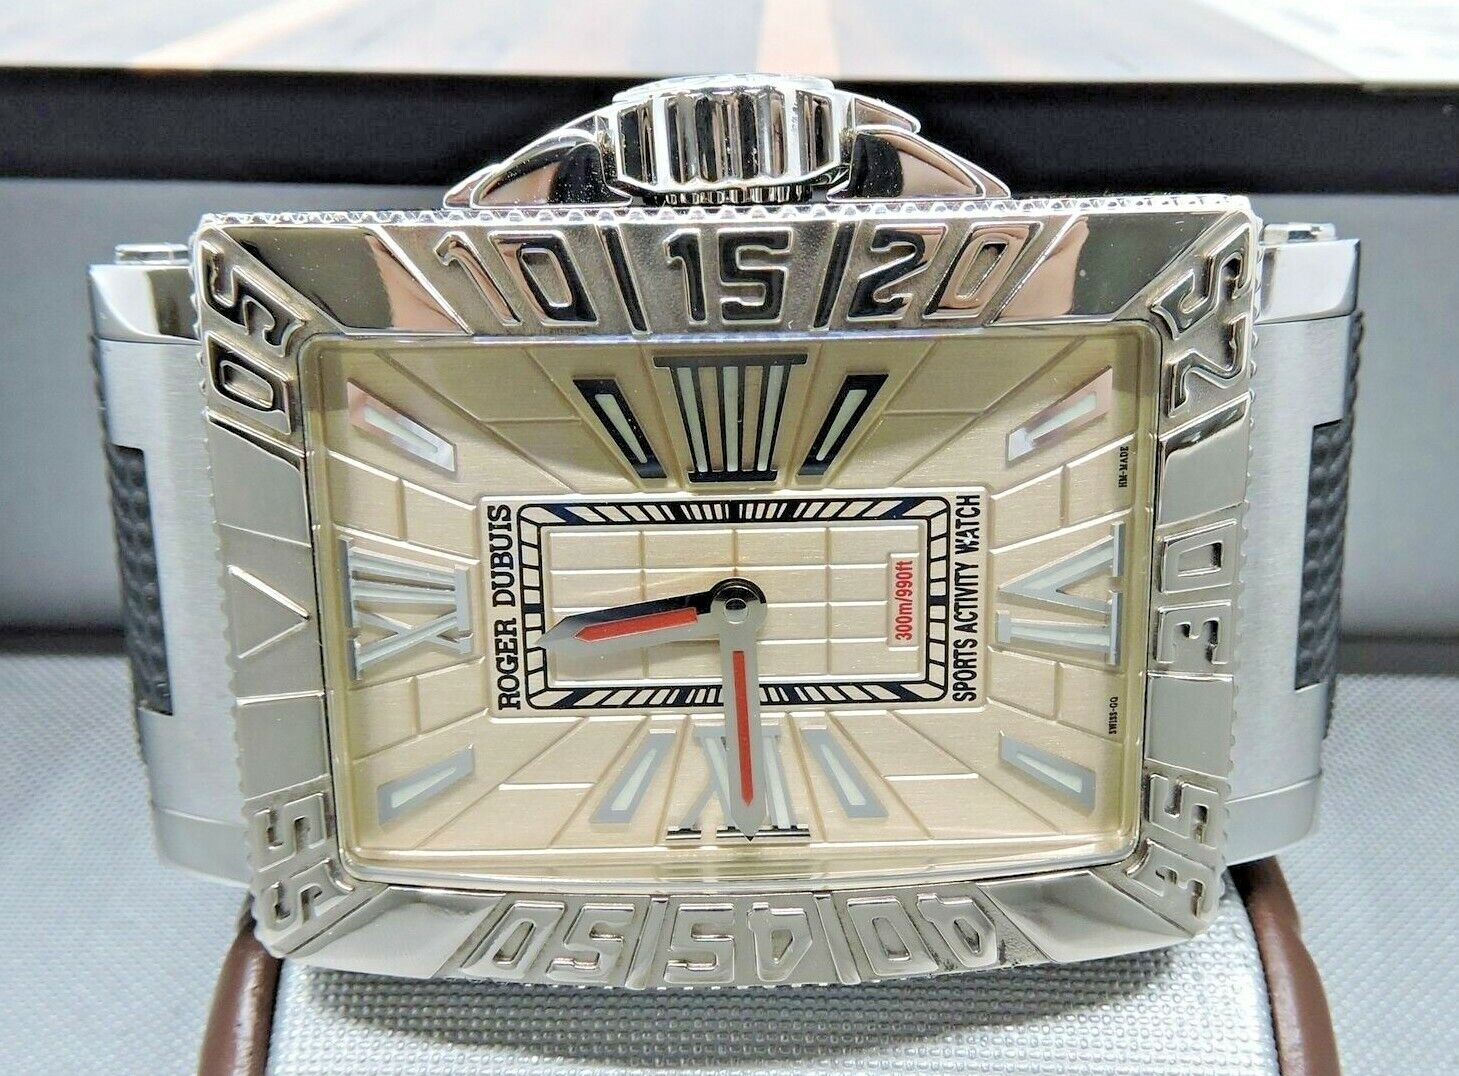 Roger Dubuis SeaMore RD Sport Activity MS34 21 9 3.53 White 18K  RETAILS FOR 20K - watch picture 1